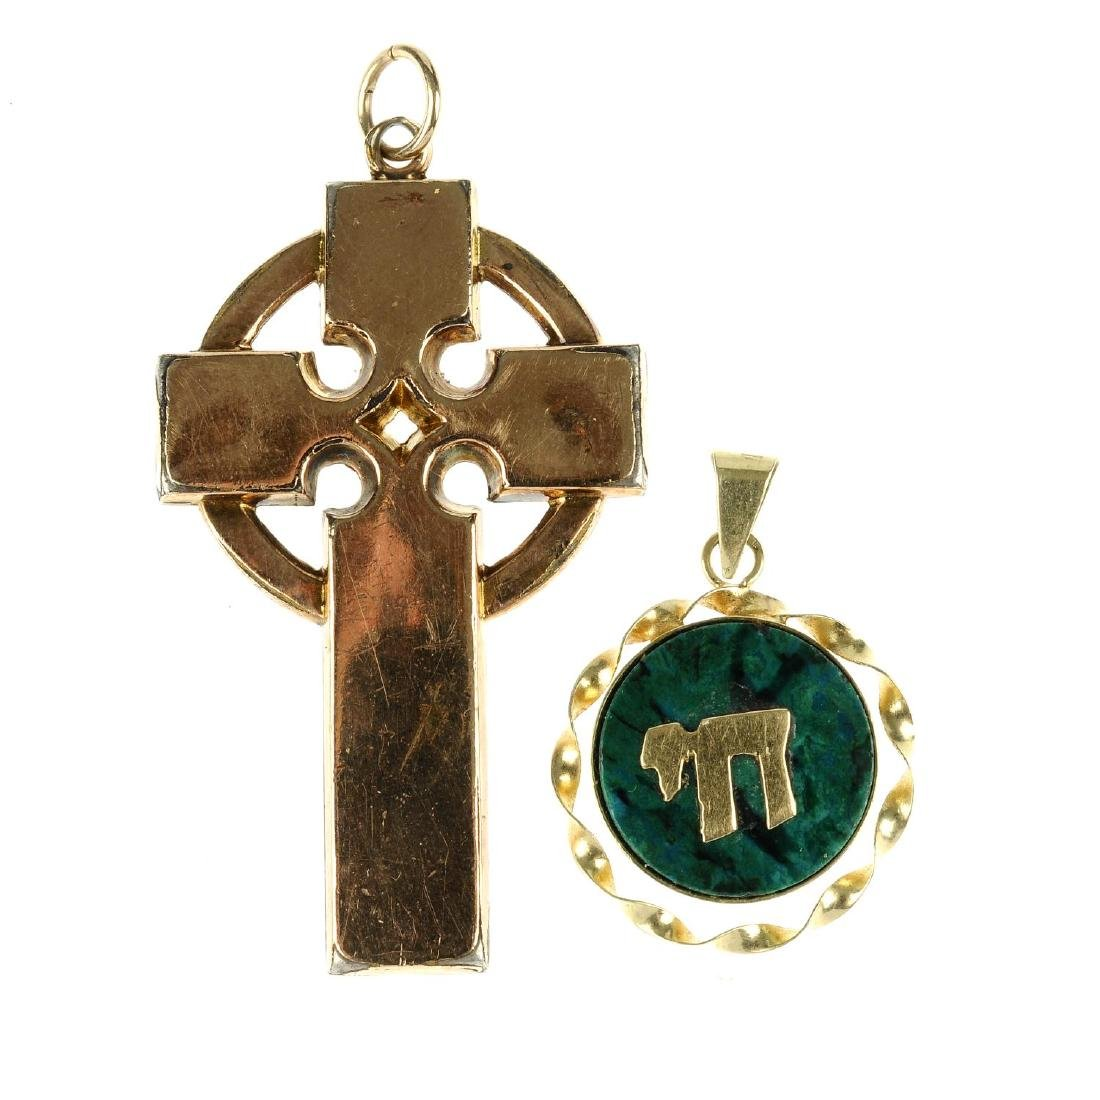 A watch, a cross and a gem pendant. The watch by